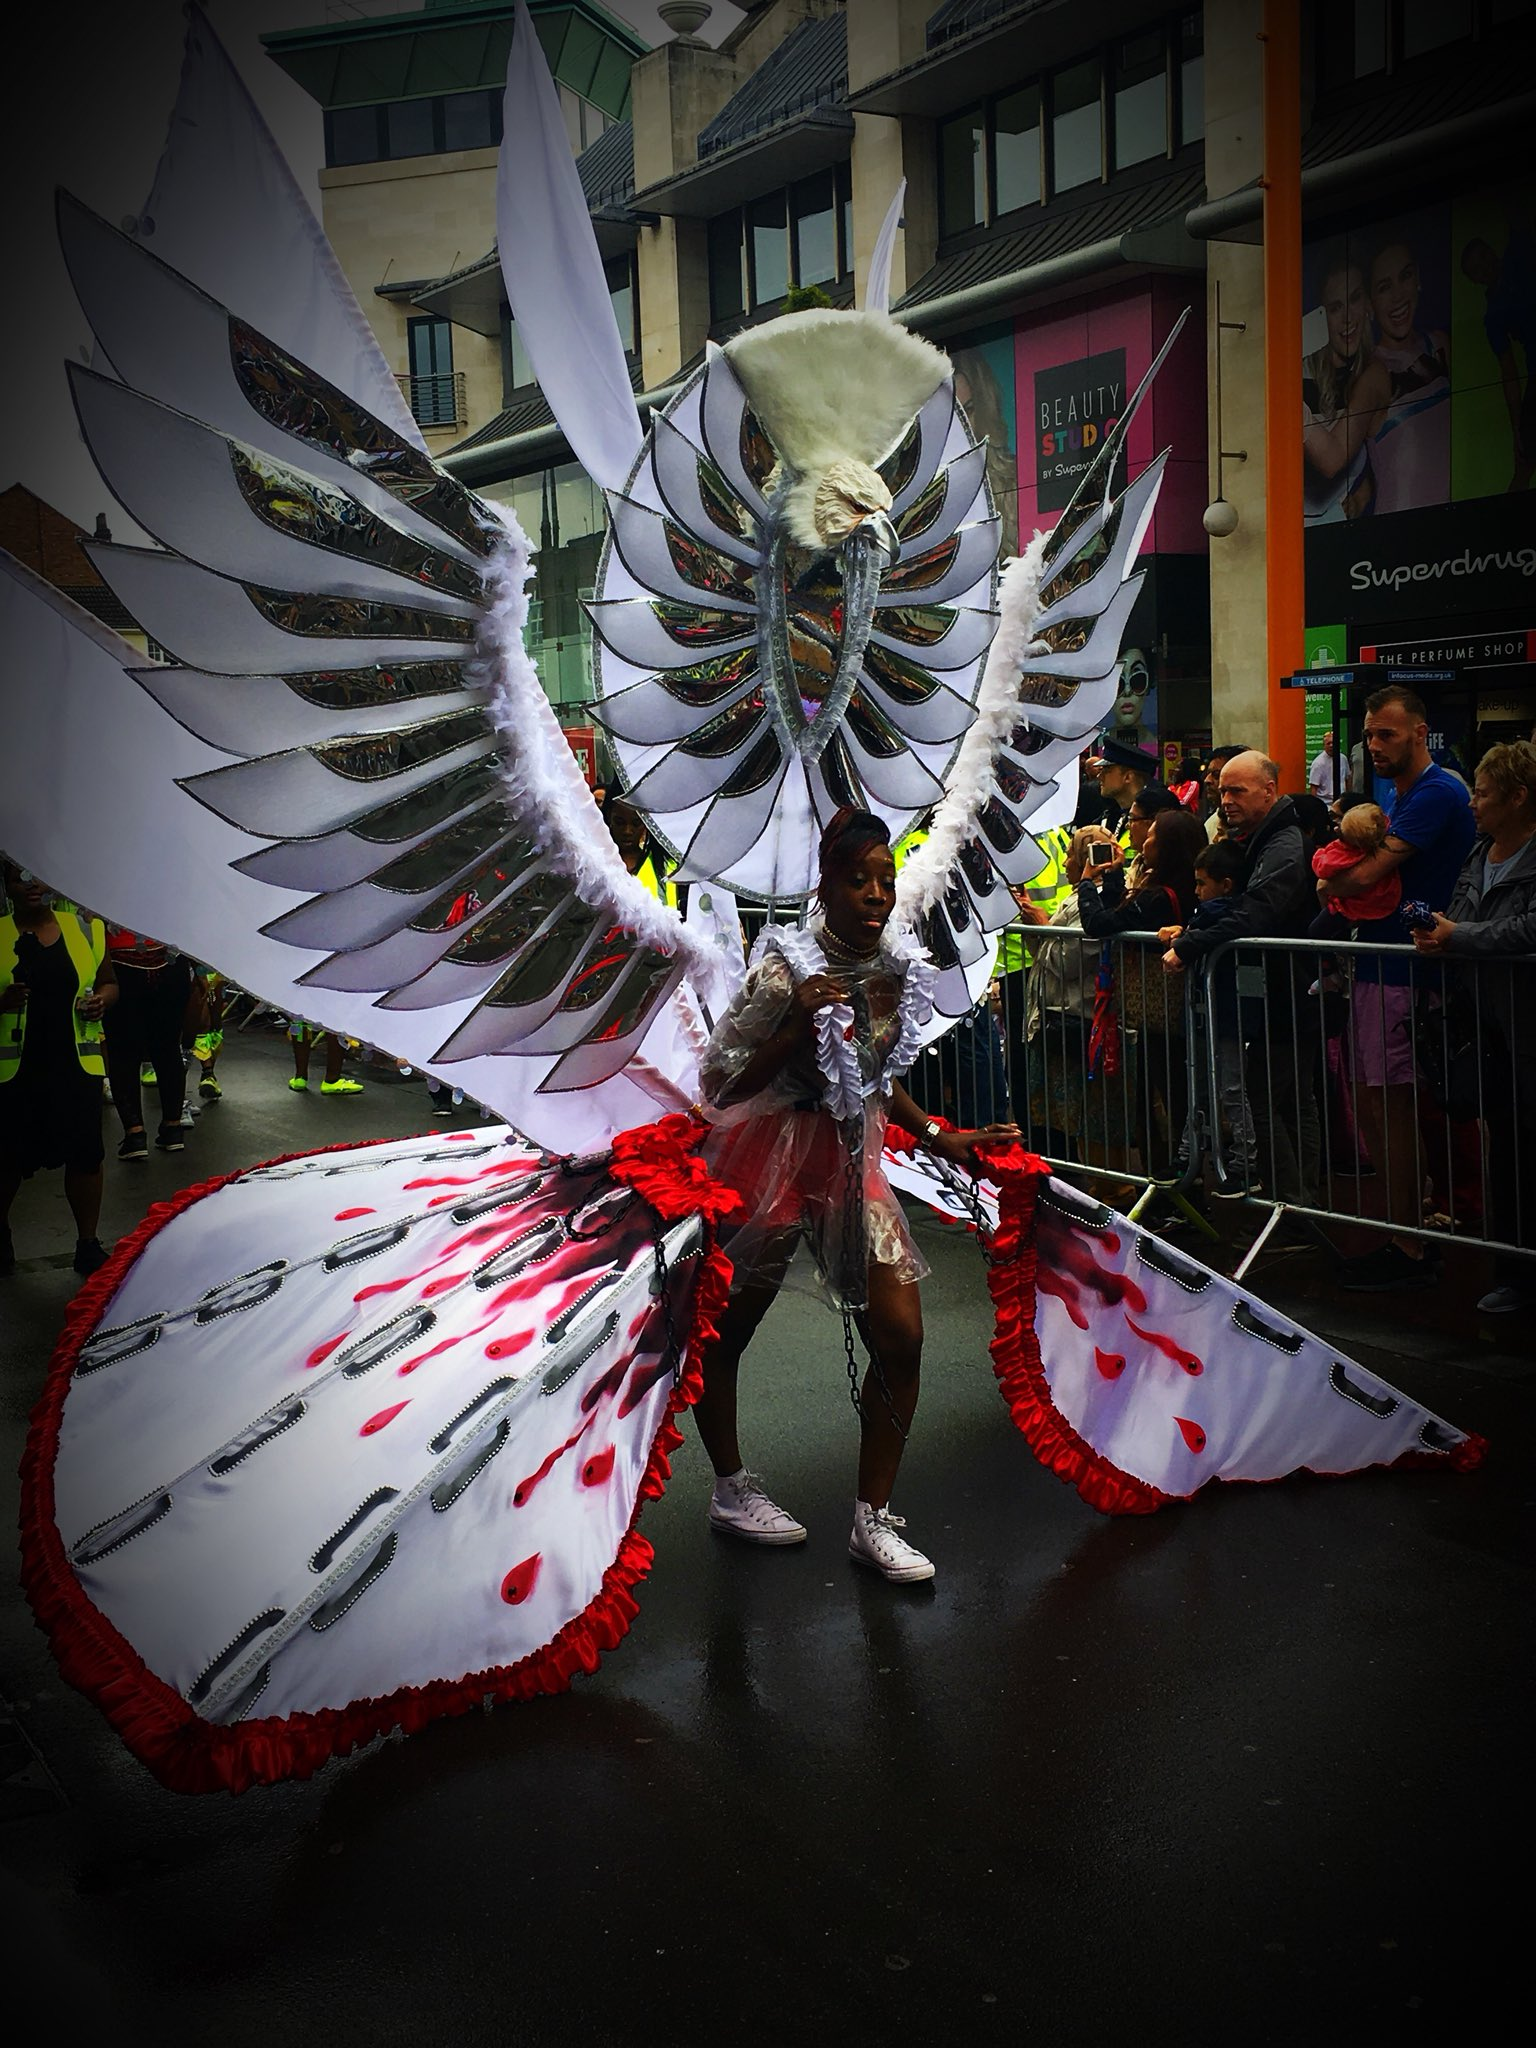 I'm looking forward to getting into the #carnival #spirit this #August with the return of the #Caribbean #Carnival #AllDressedUp @Highcross @leicesterfest #Aug4th https://t.co/3Hne3WPjih